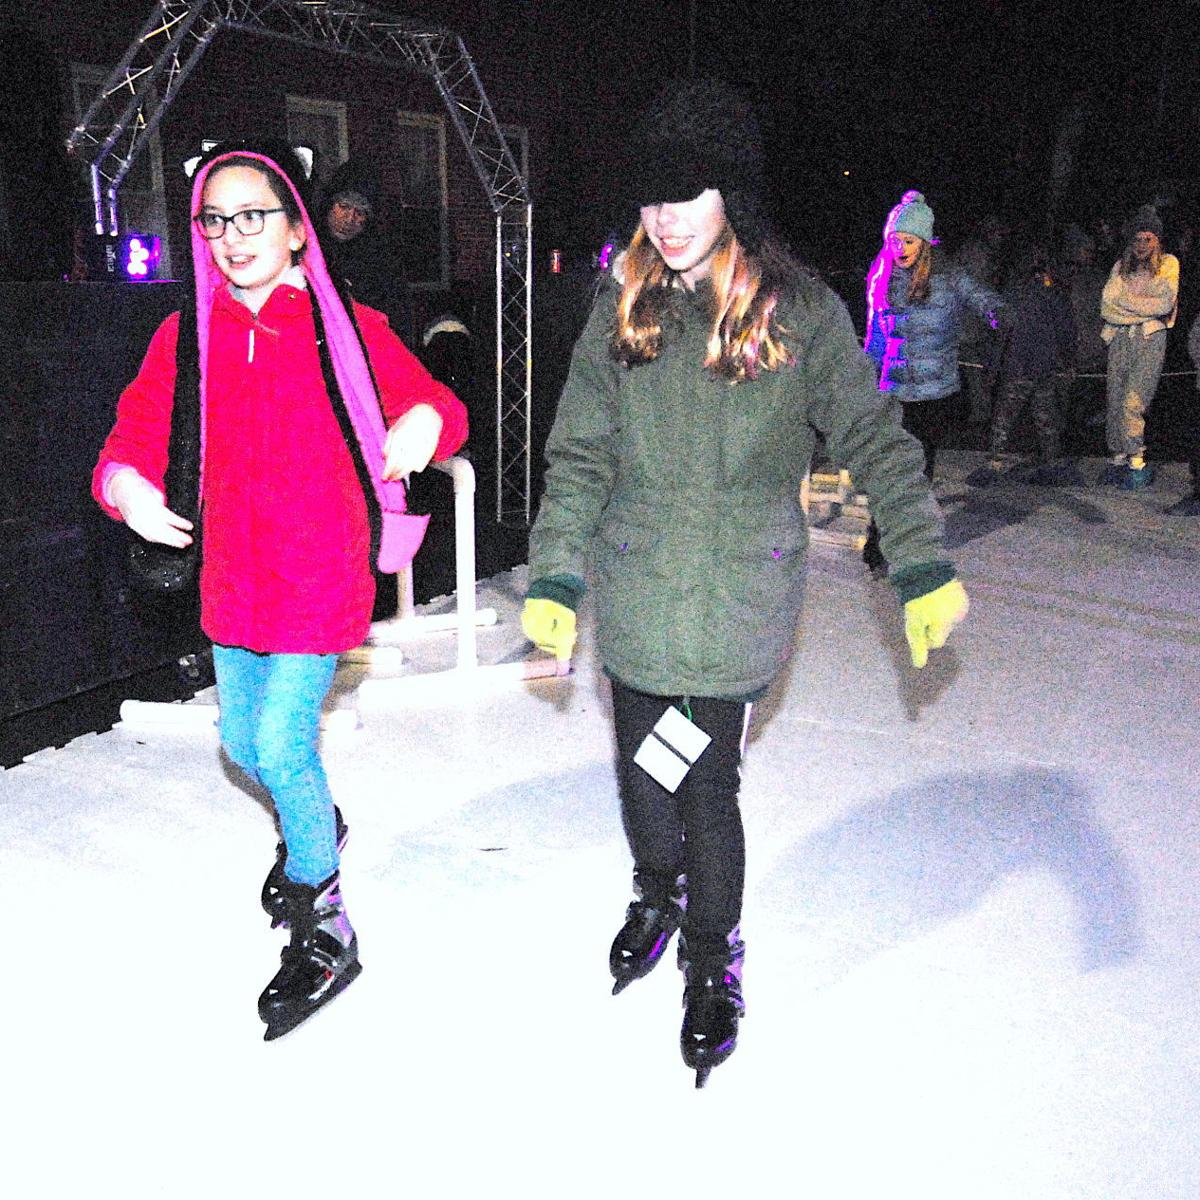 Chesapeake Fire & Ice Fest continues today